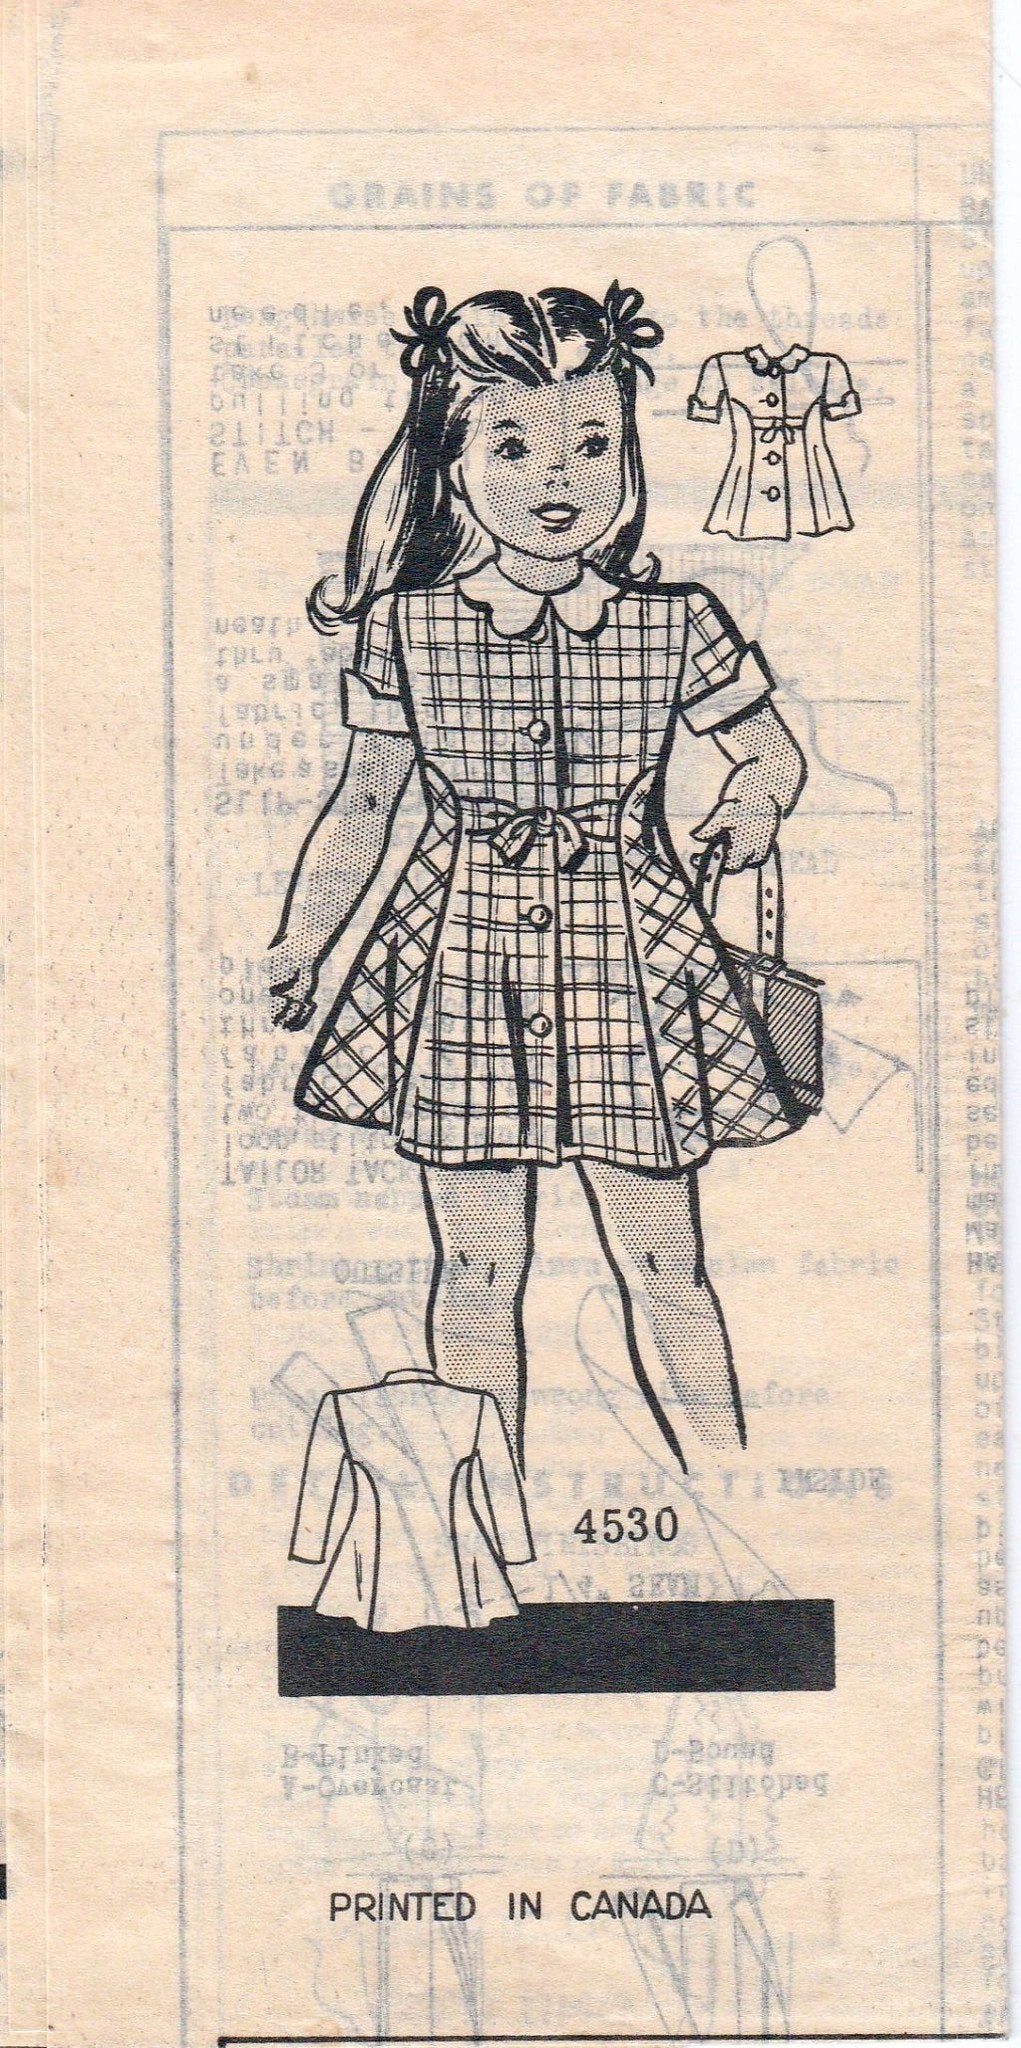 Mail Order 4530 Anne Adams Vintage 1940's Sewing Pattern Girls Toddler Dress - VintageStitching - Vintage Sewing Patterns